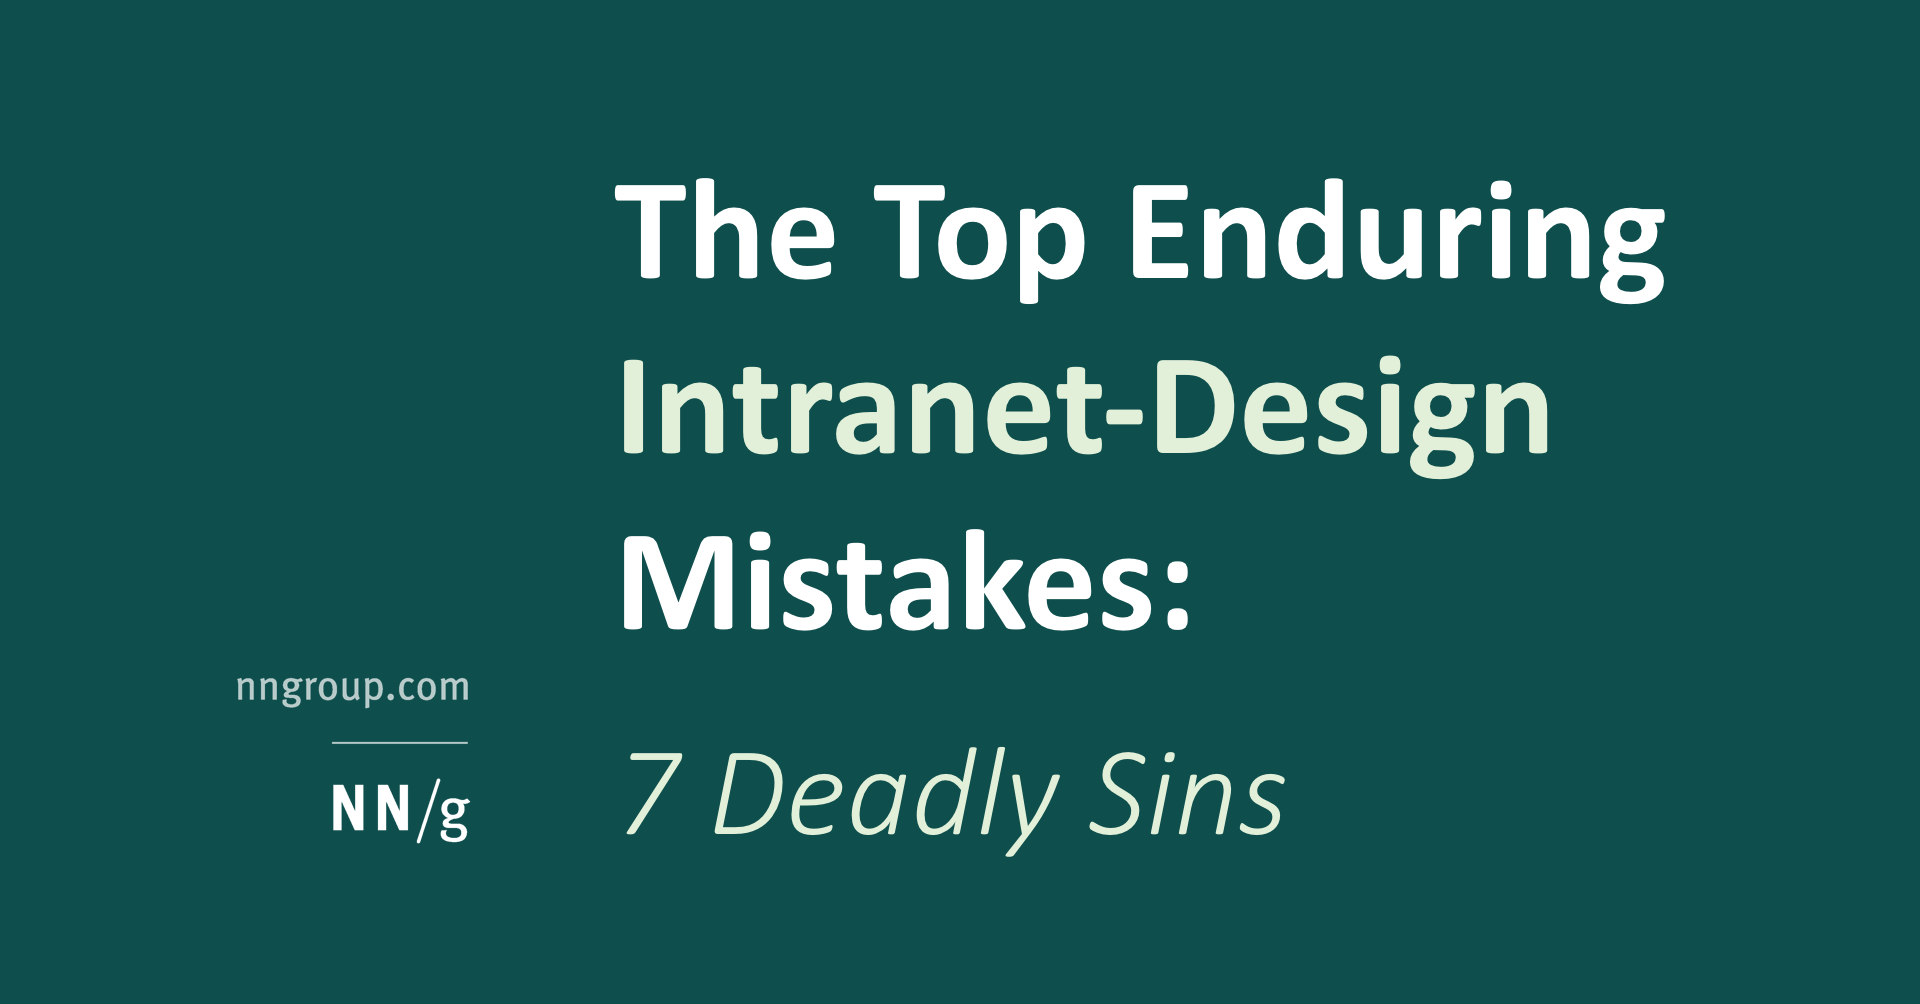 Top 7 Enduring Intranet-Design Mistakes